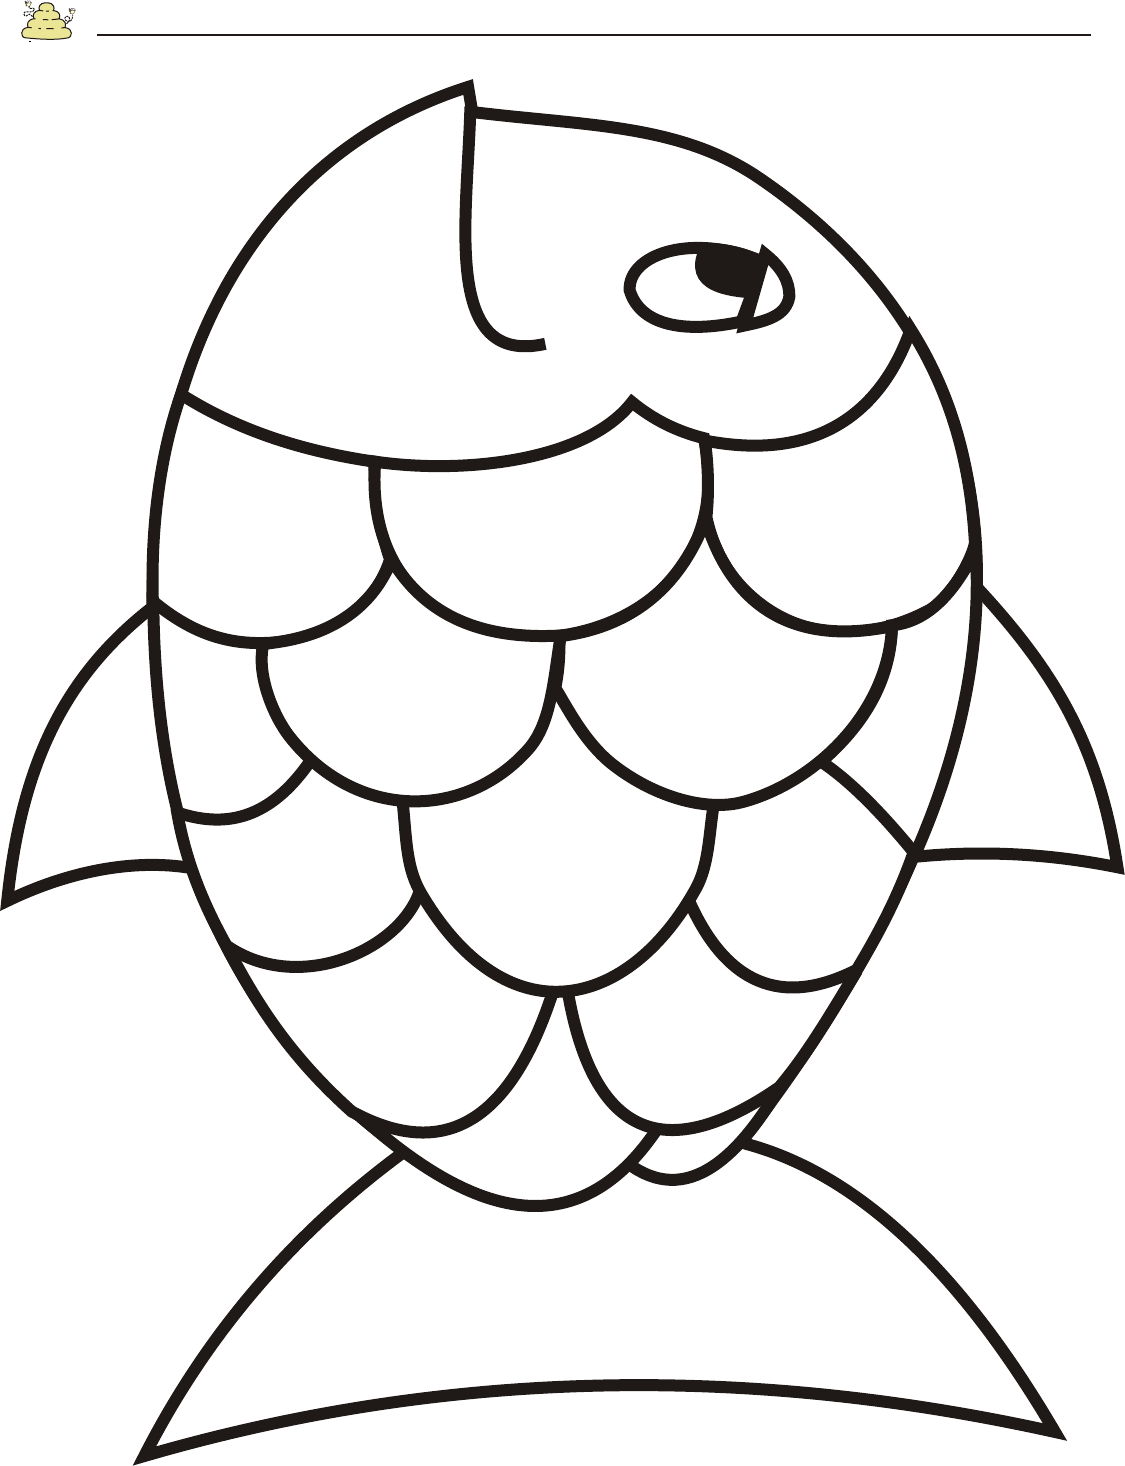 rainbow fish pattern simple fish outline clip art clipart panda free fish rainbow pattern